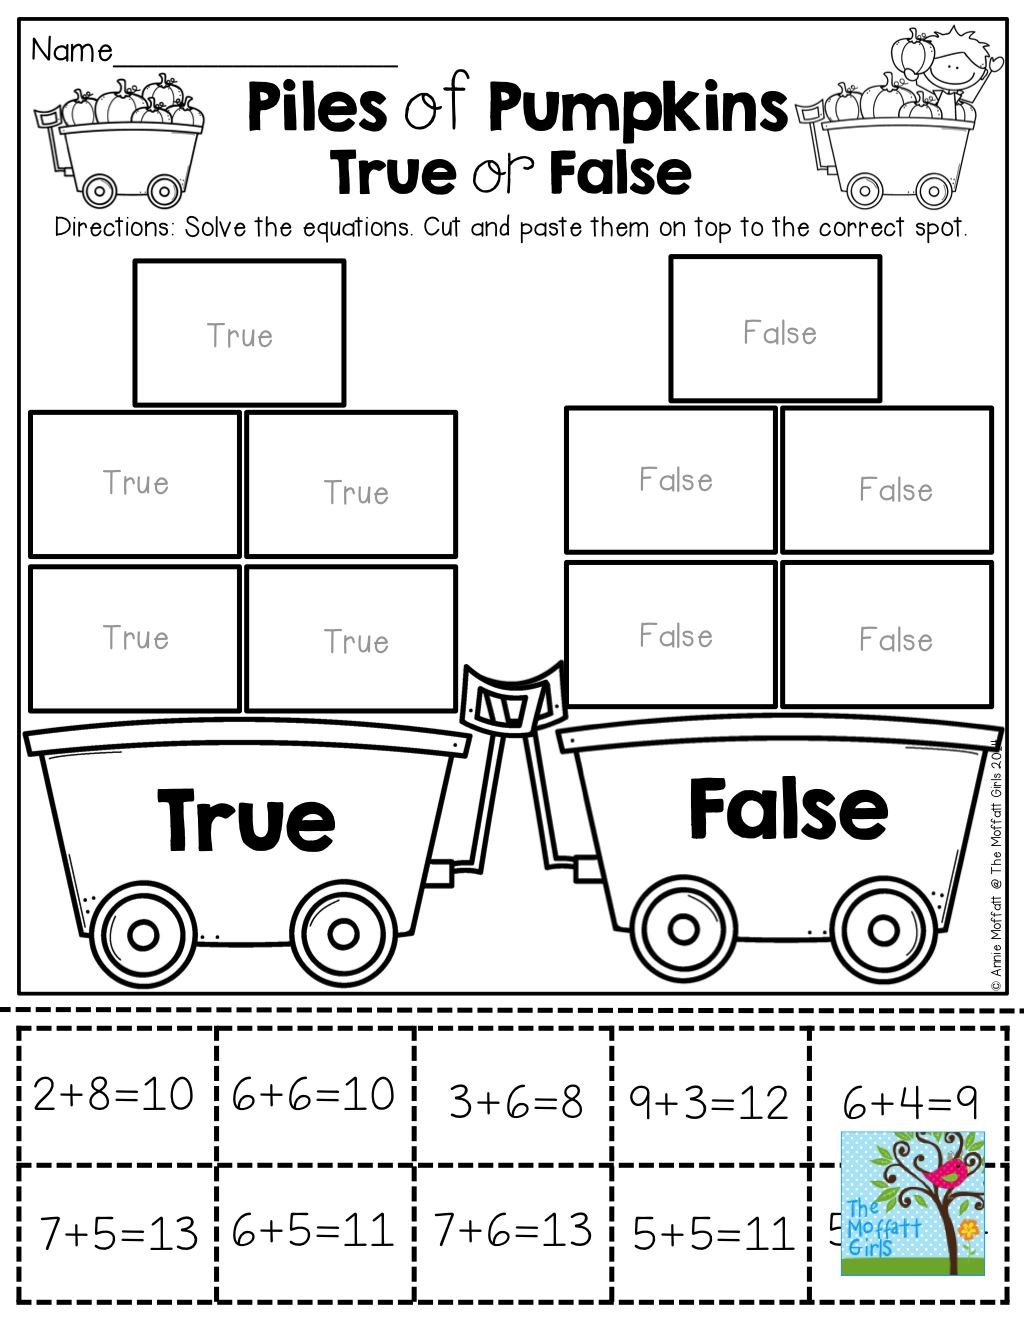 True Or False Cut And Paste The Number Sentences To The